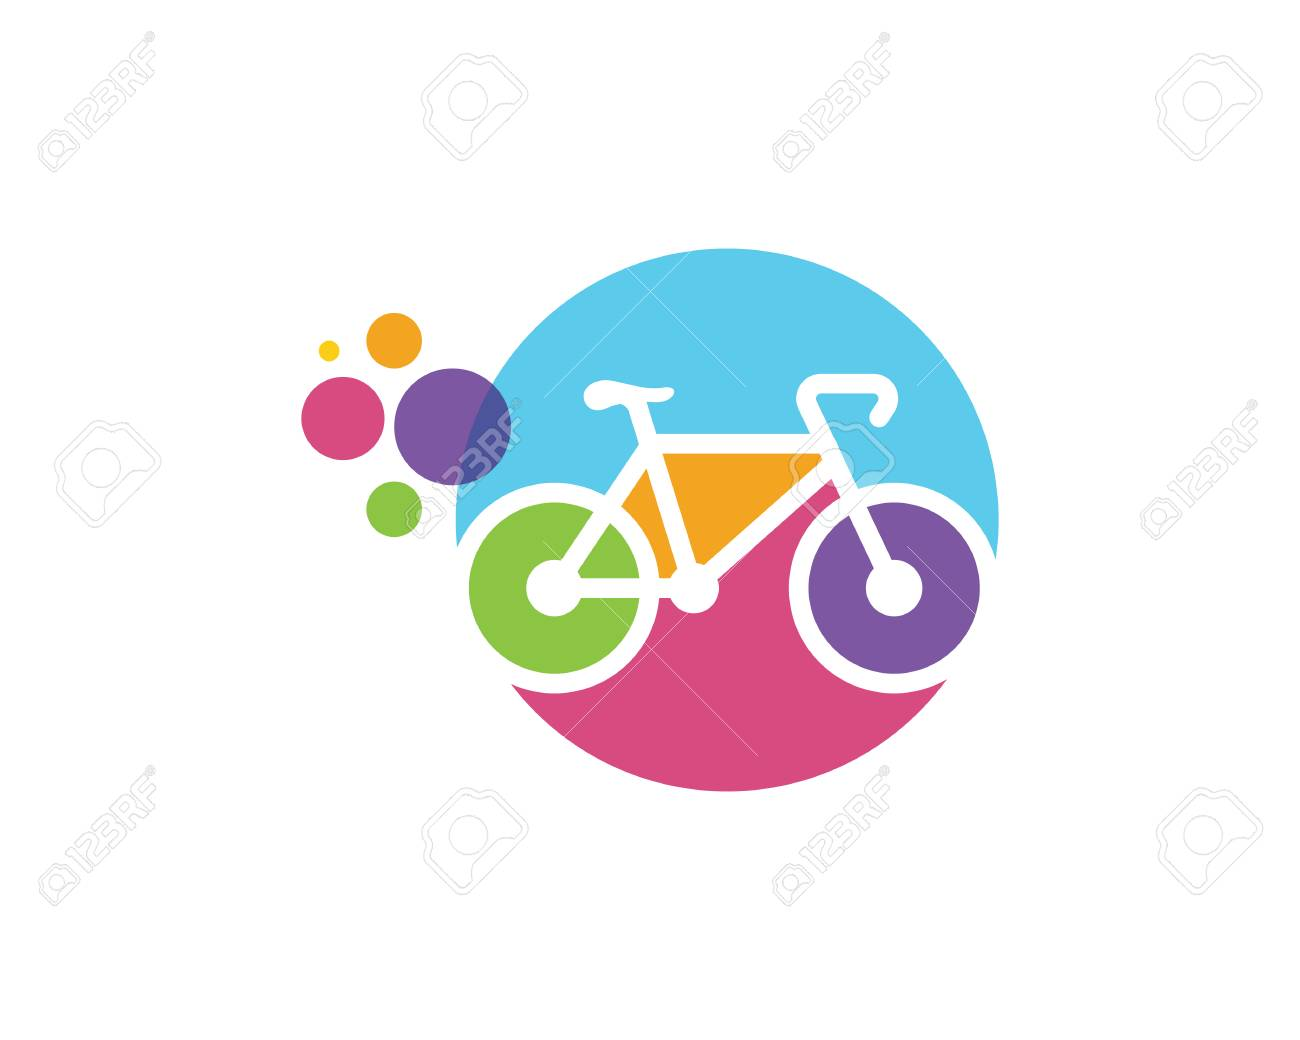 Speedy bike logo design template royalty free vector image.